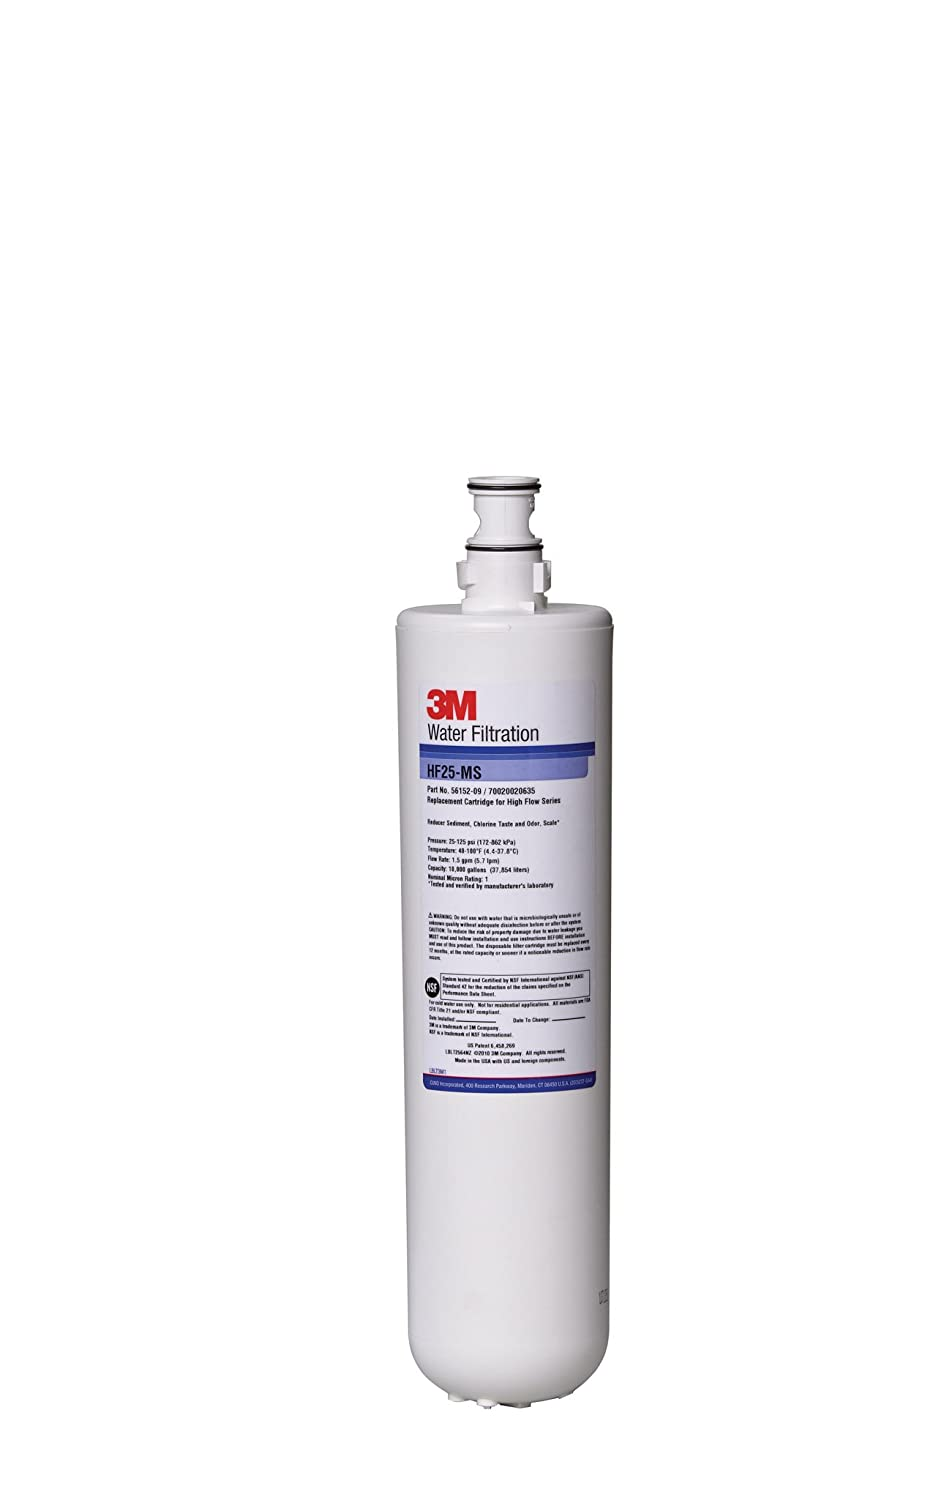 3M Purification Food Service HF25 MS 5615209 High Flow Series Filter Cartridge Water Filtration Products Pack of 6